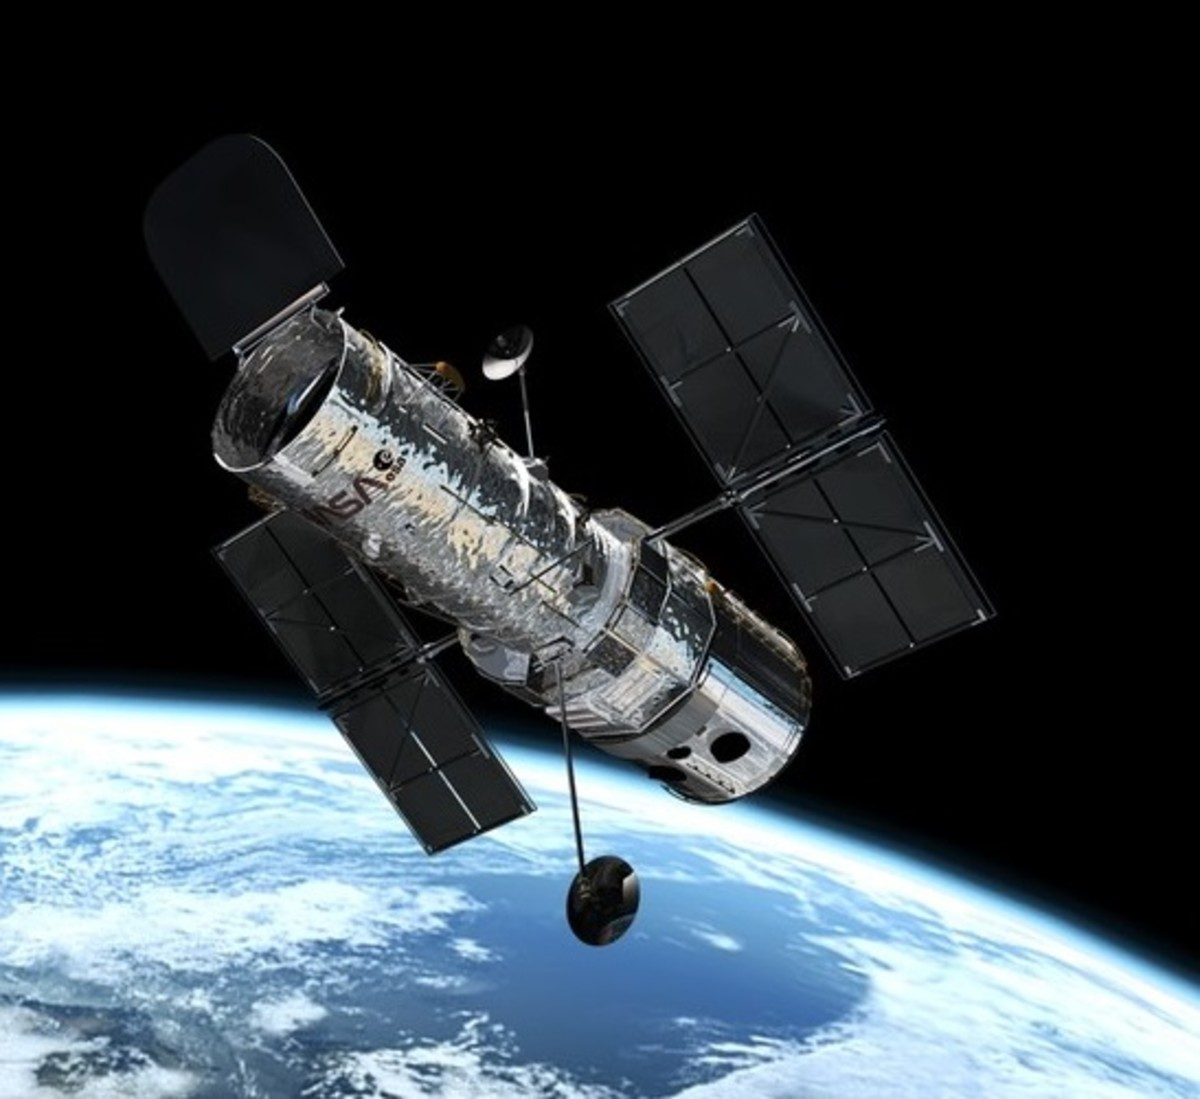 Hubble Telescope in orbit around Earth.